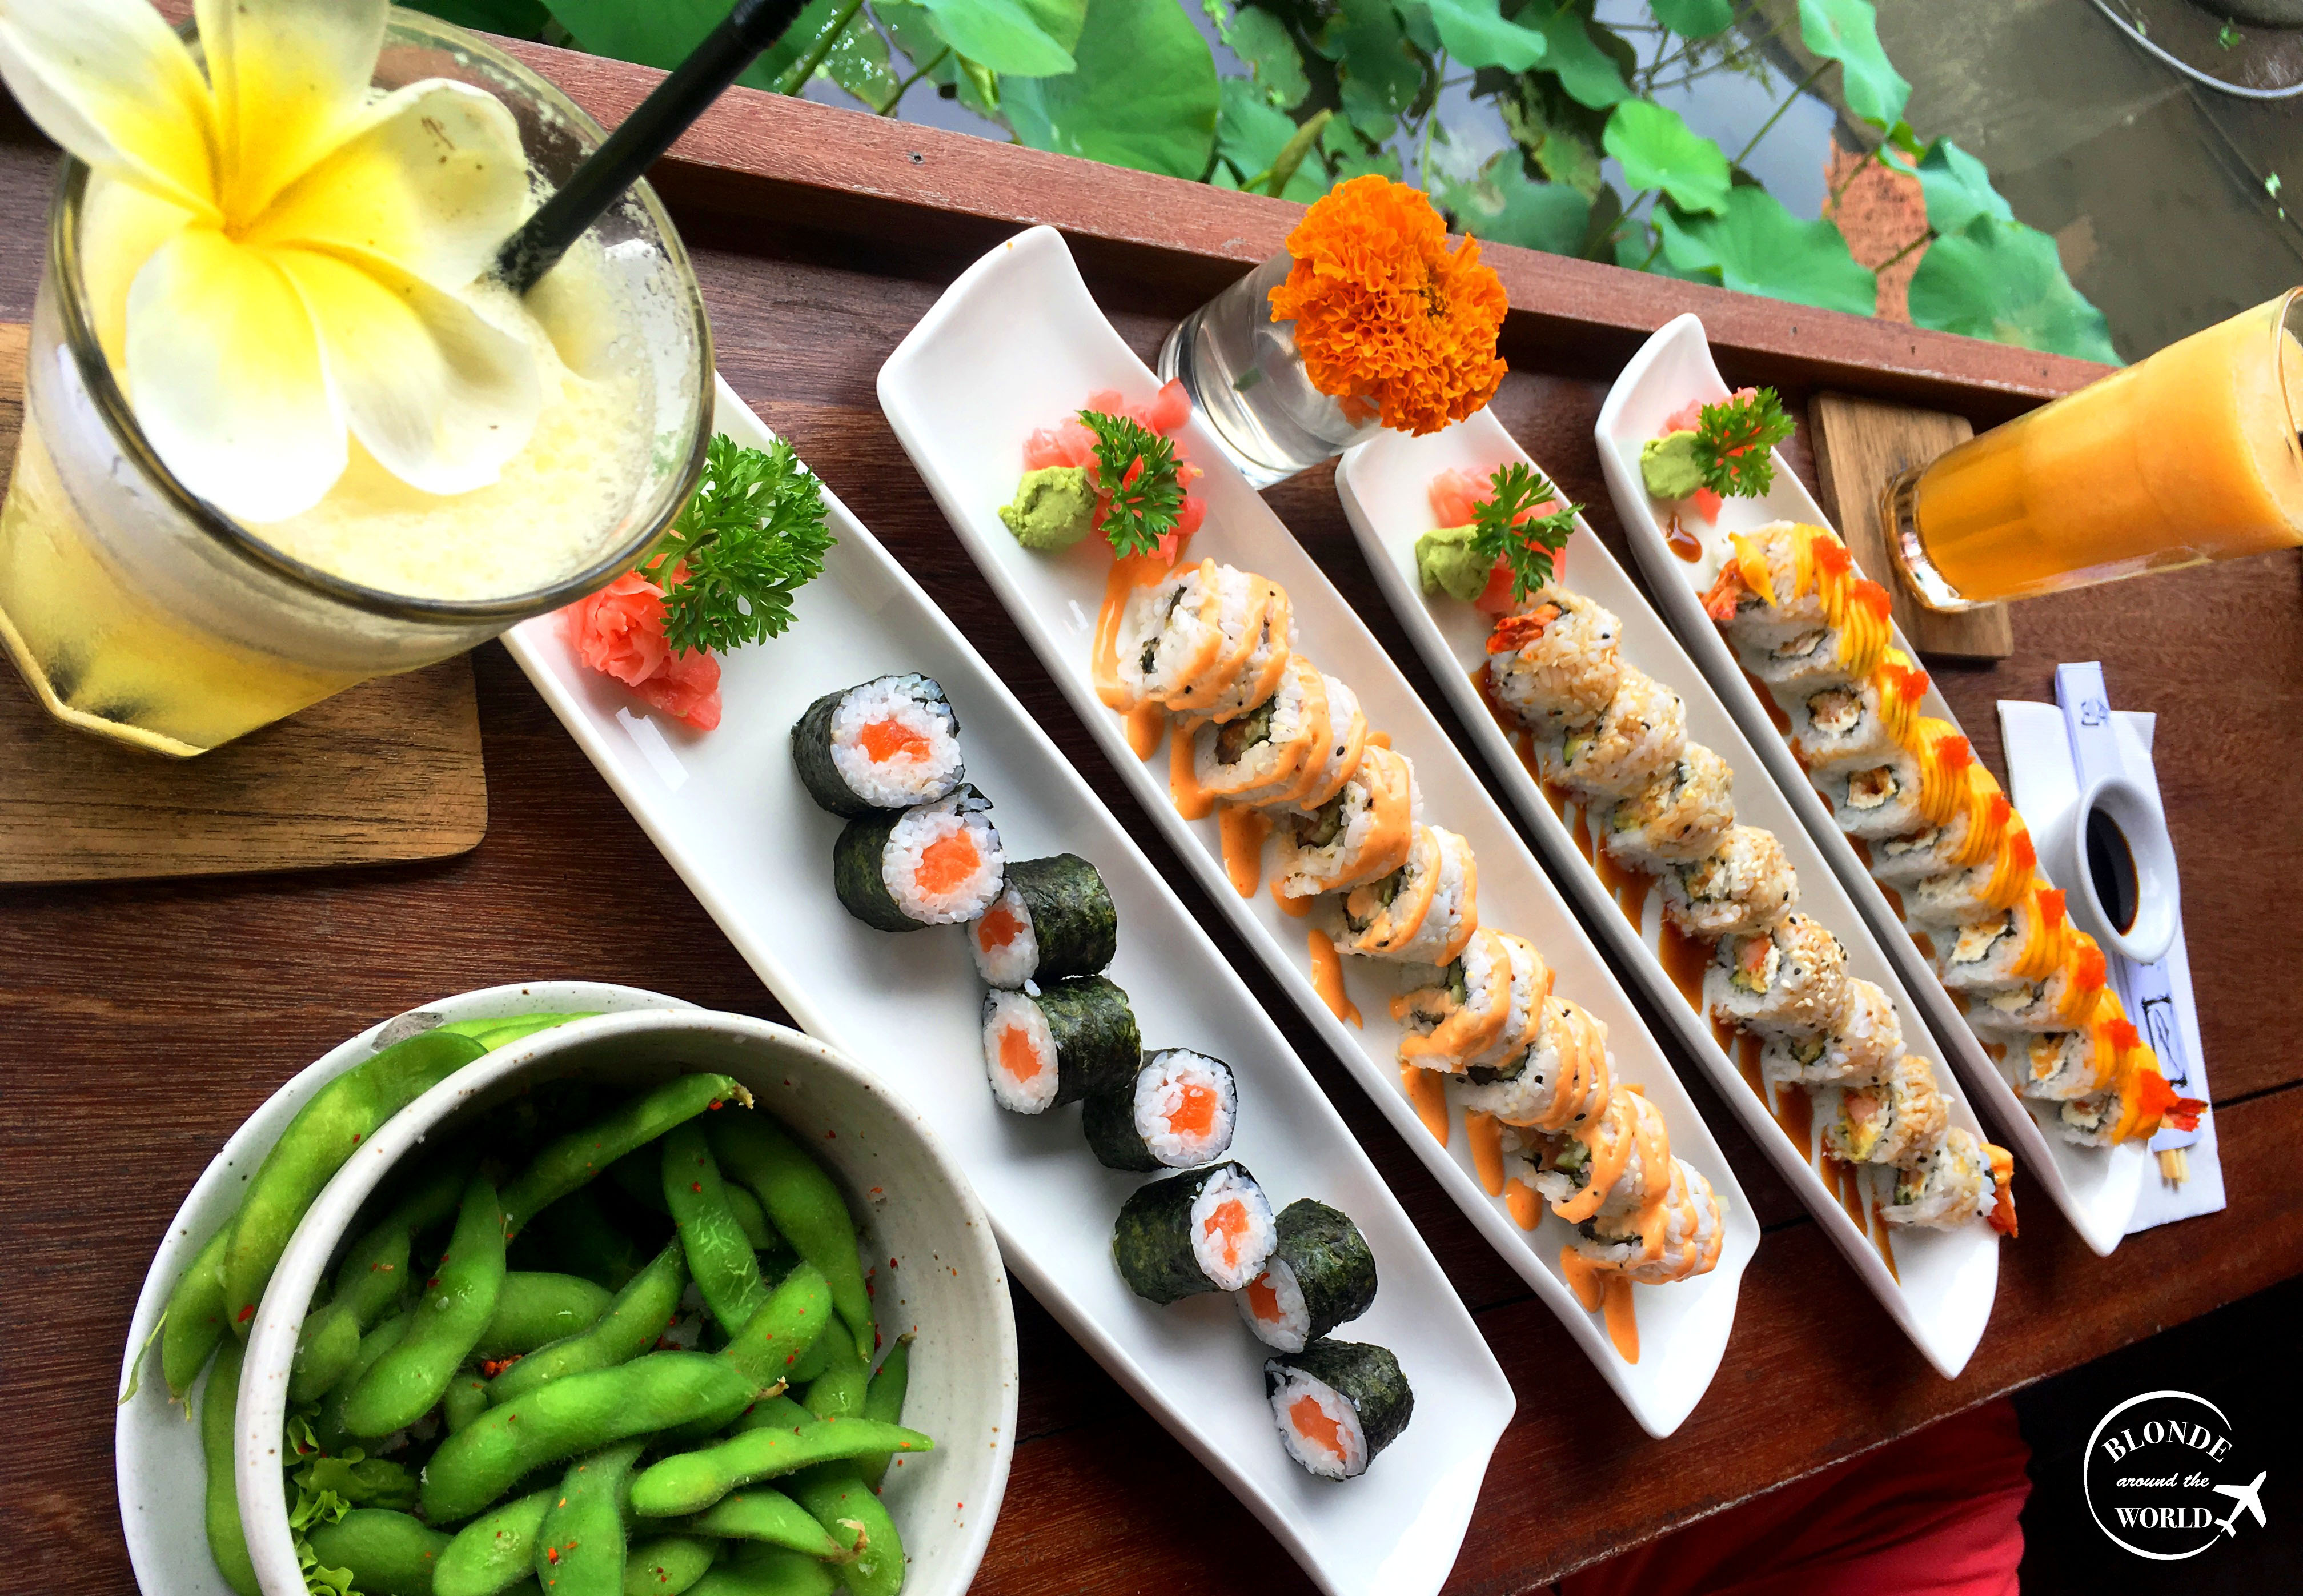 My Top 5 Best Sushi Places In The World Blonde Around The